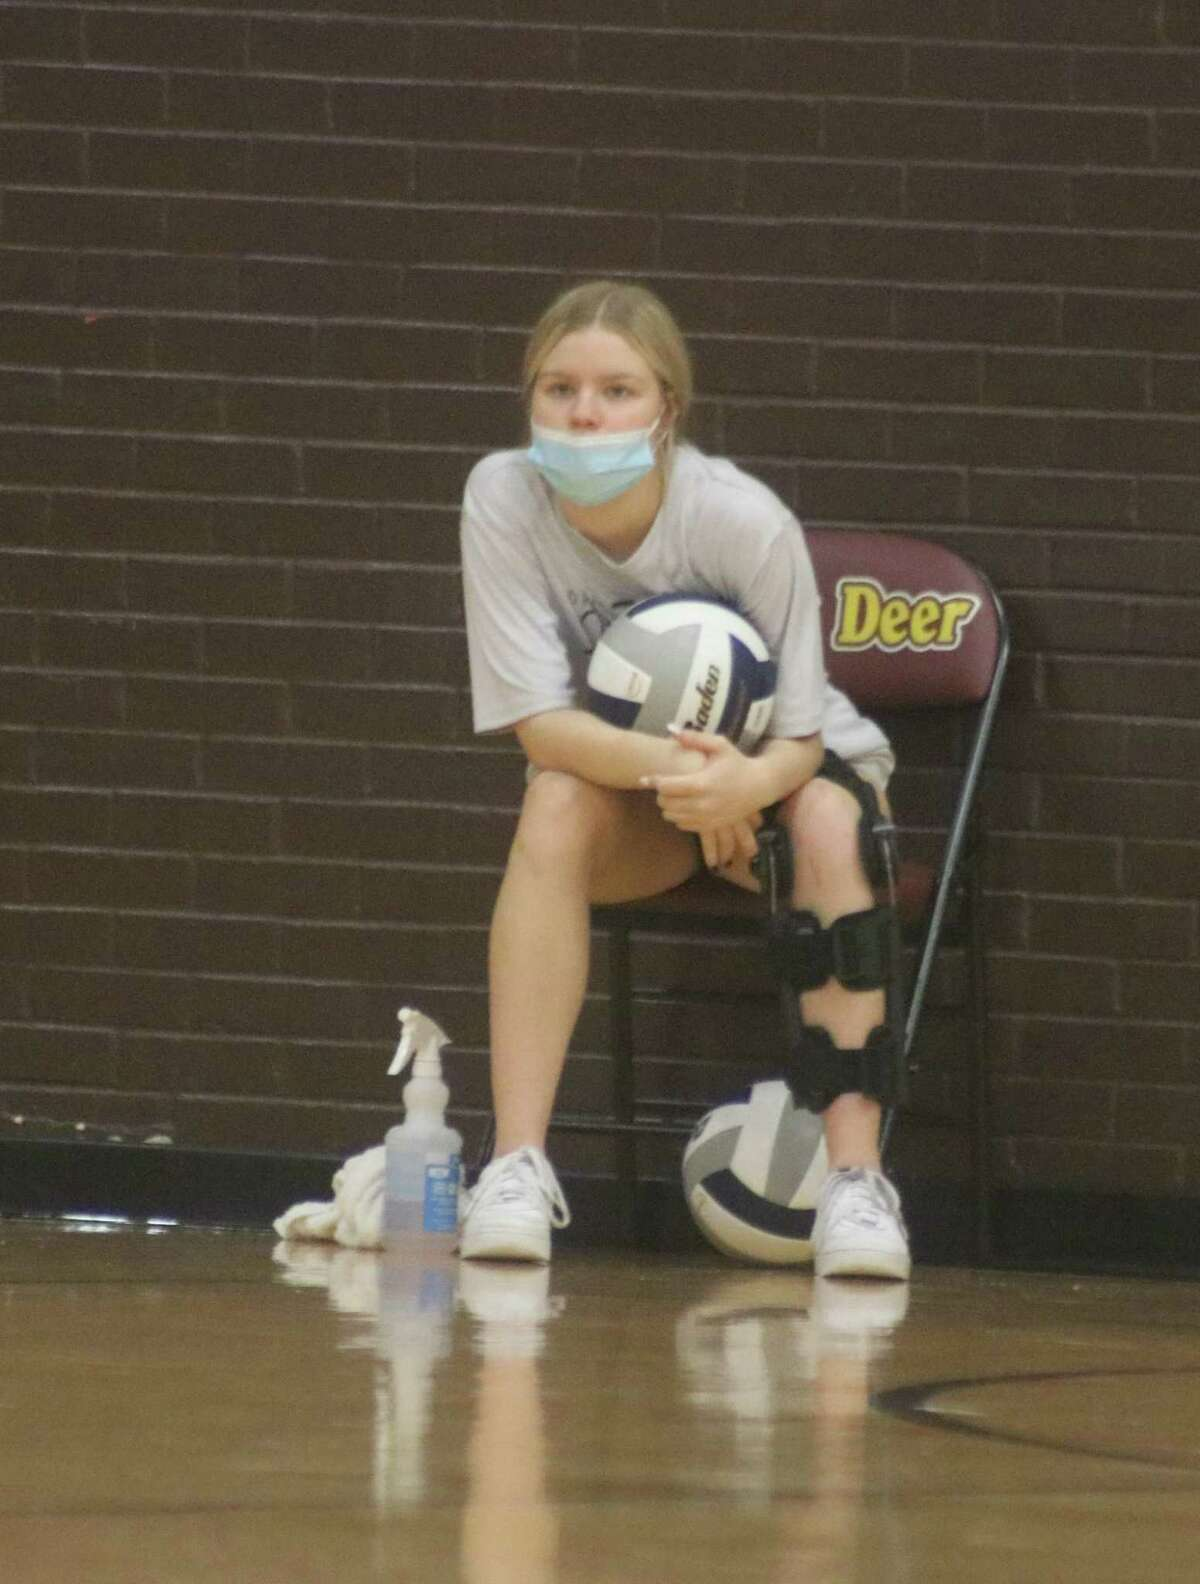 With disinfectant at the ready, Kayley Bowles has a couple of sanitized volleyballs she has rubbed down and ready to use during Tuesday night's match.